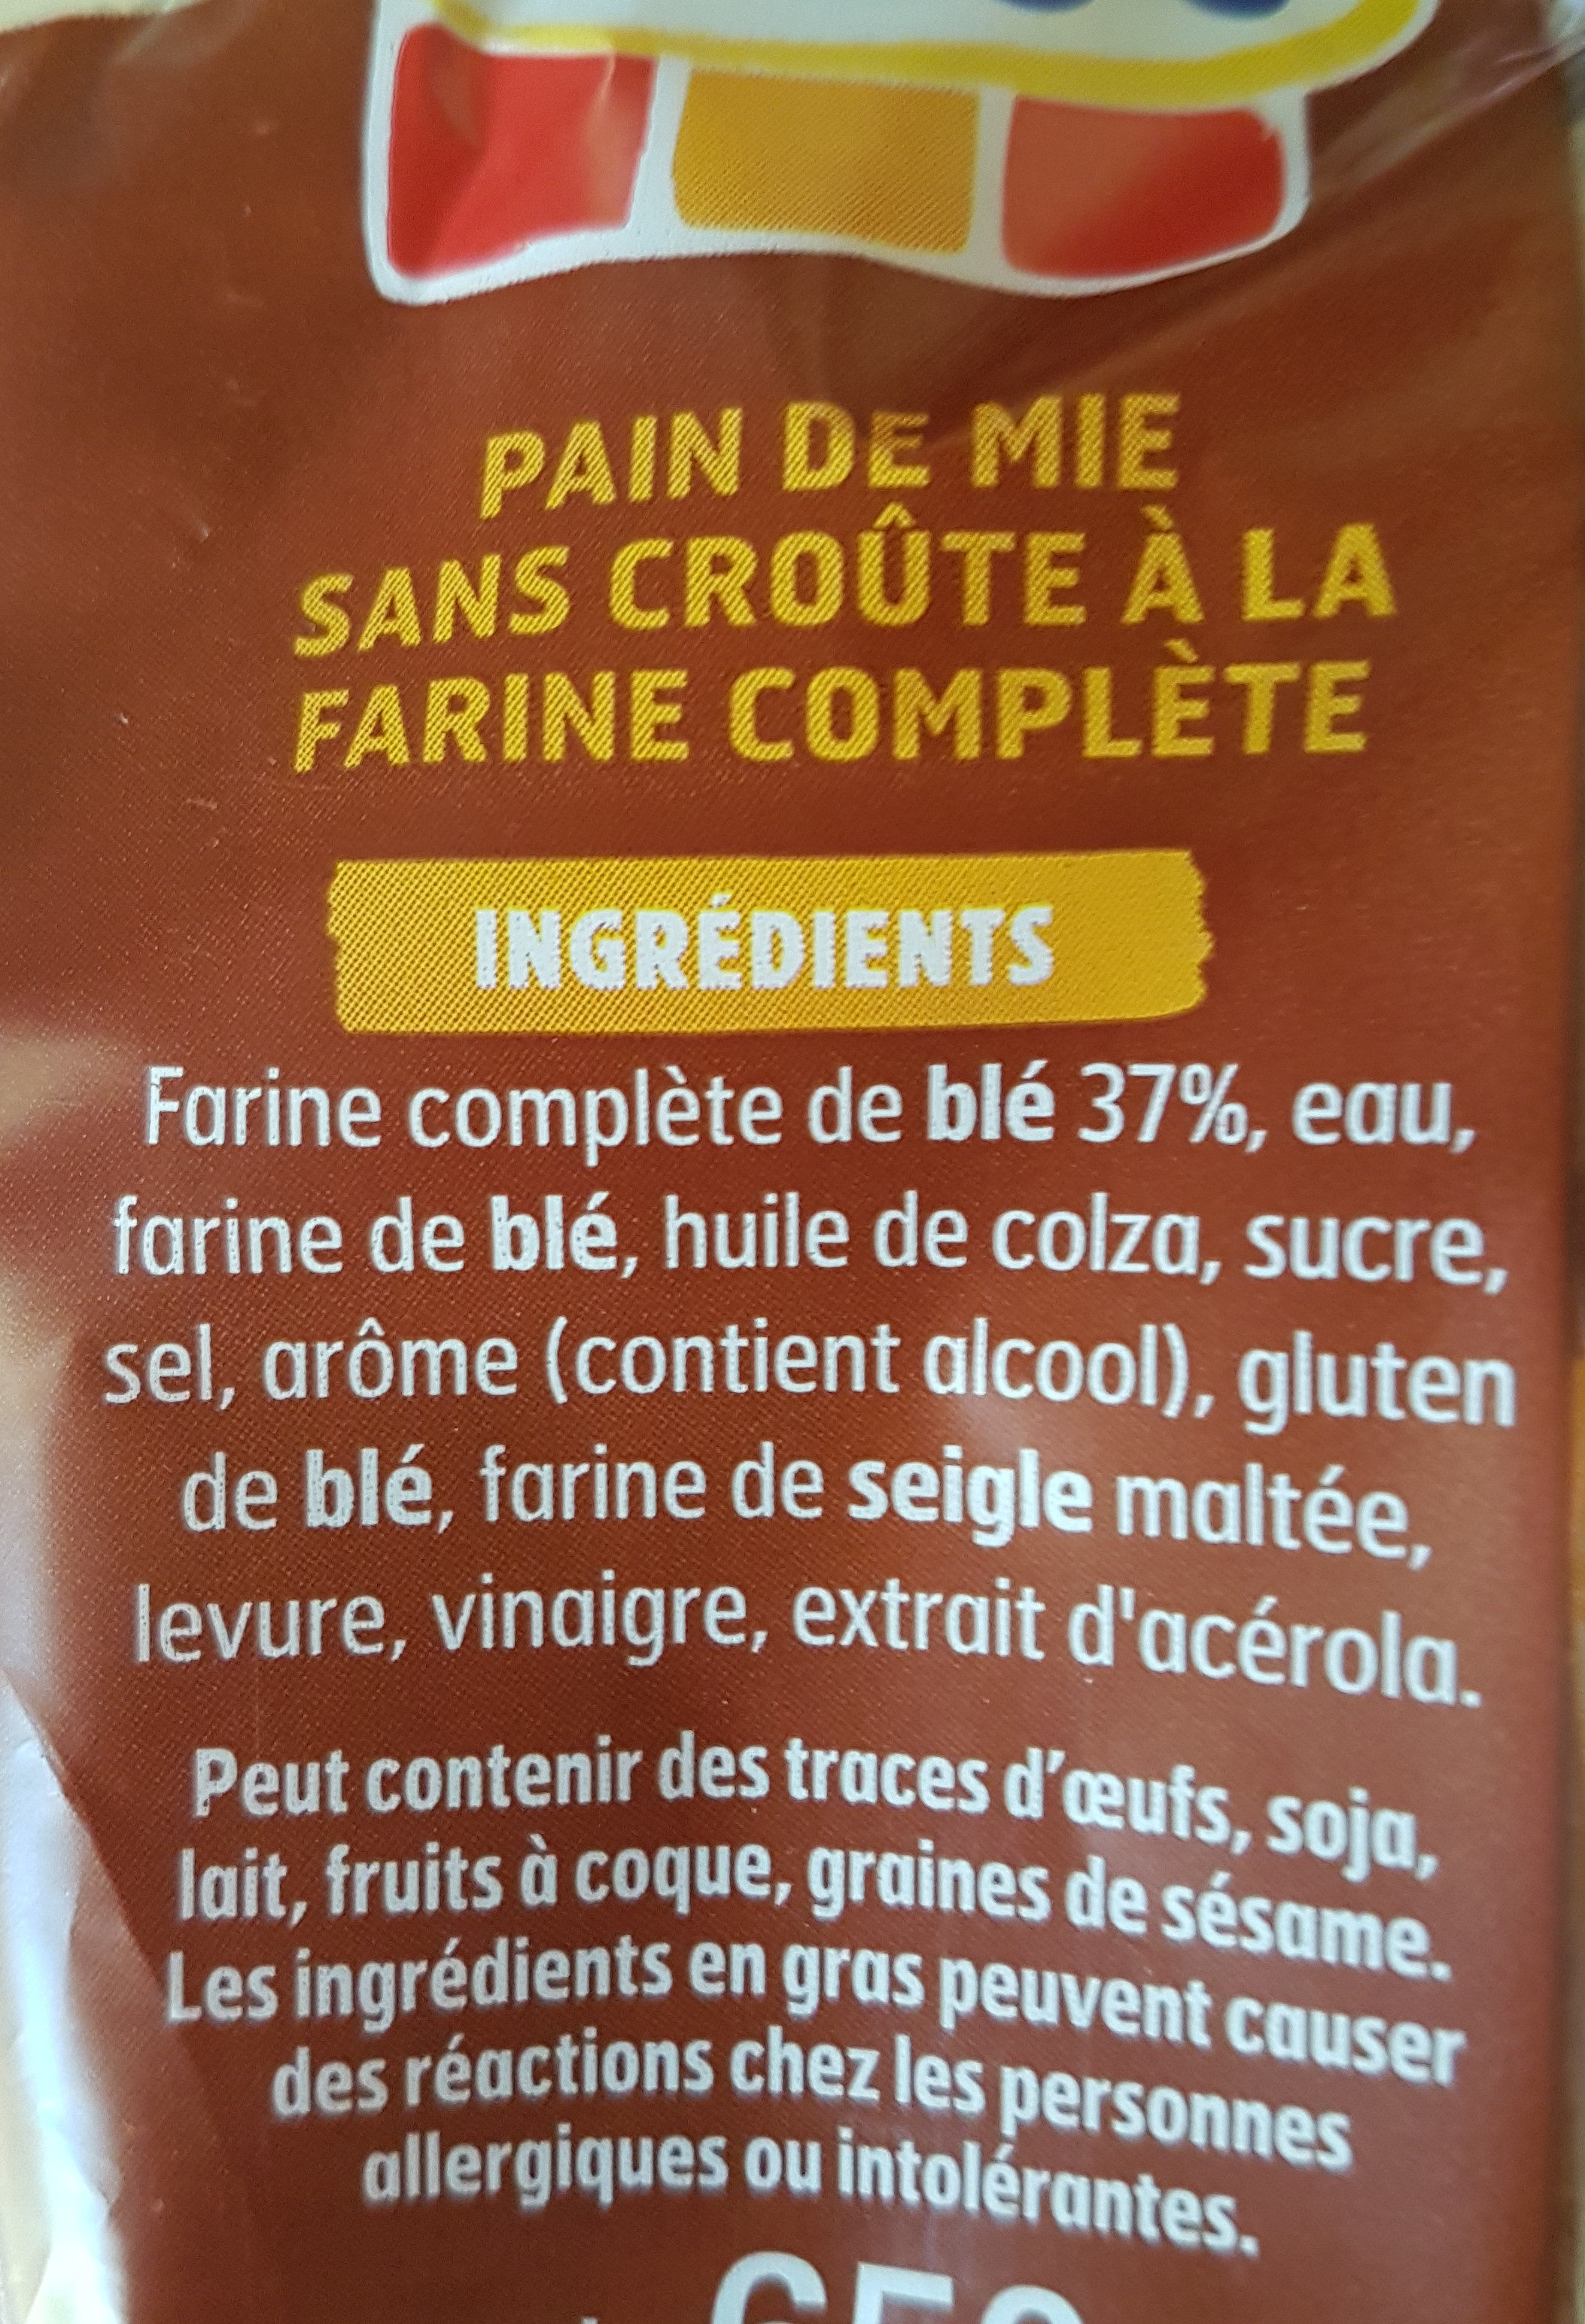 Pain 100% mie complet - Ingredients - fr